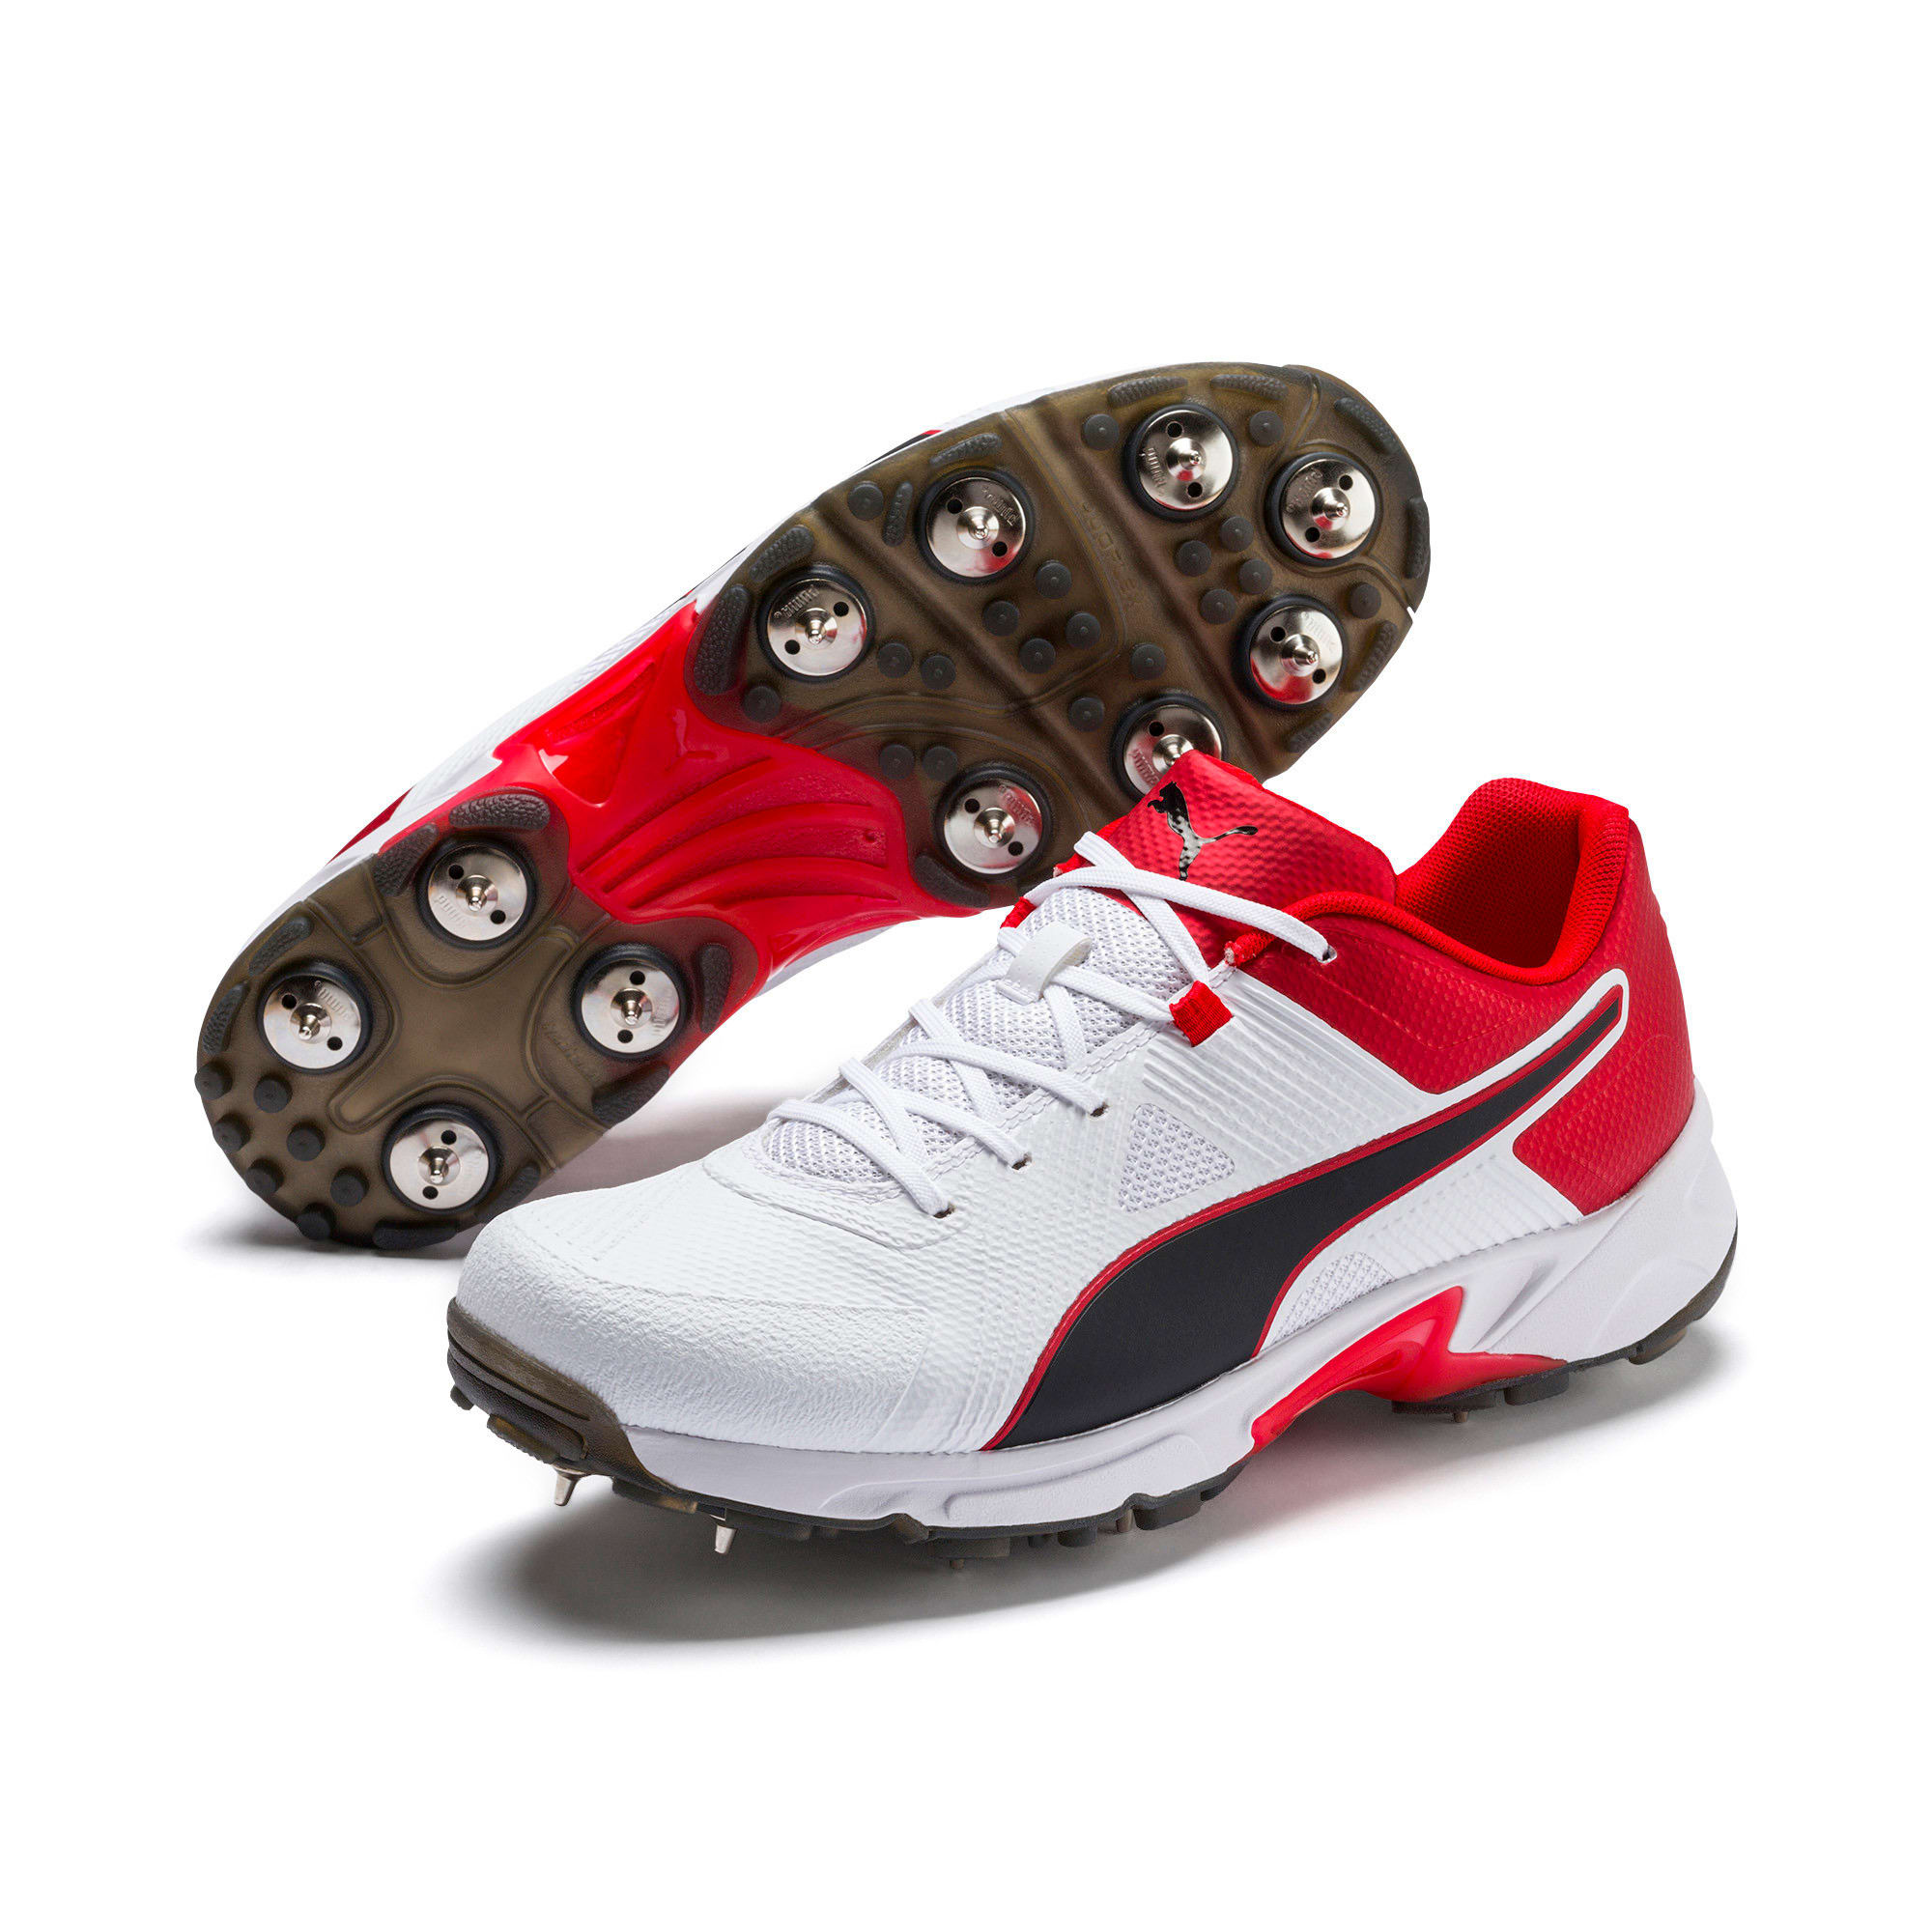 Thumbnail 2 of PUMA Spike 19.1 Men's Cricket Shoes, White-Black-High Risk Red, medium-IND